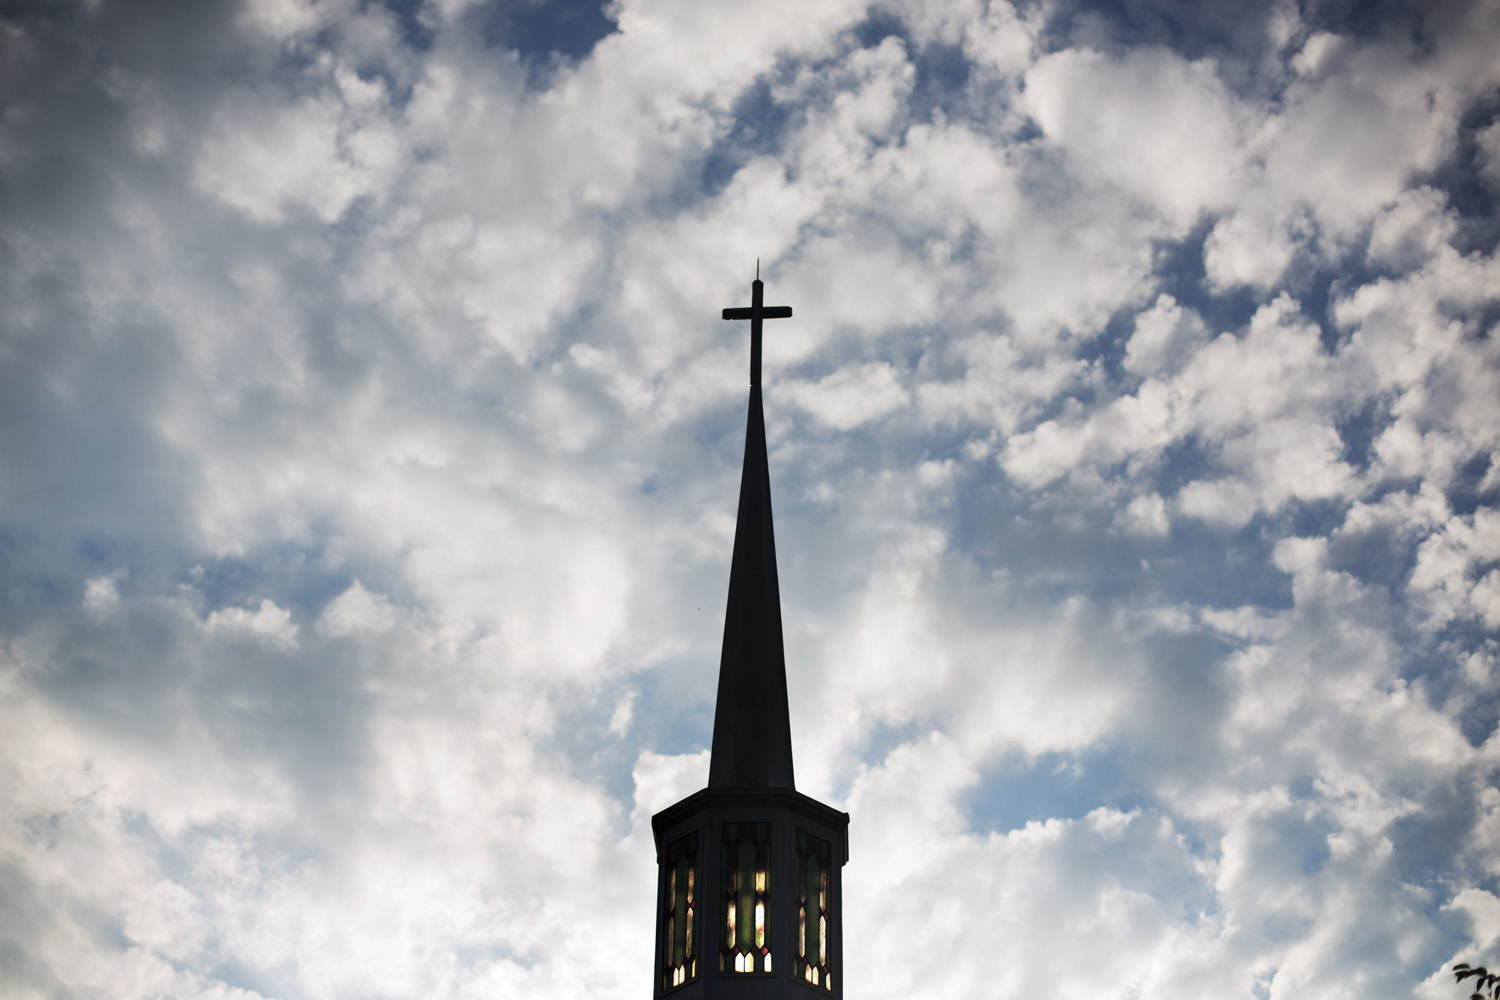 The sun rises behind the steeple of Maranatha Baptist Church Sunday, Aug. 23, 2015, in Plains, Ga. The Baptist church where former President Jimmy Carter teaches Sunday School classes and he and wife Rosalynn are deacons has been at the heart of their life since they returned to Georgia in 1981. On Sunday morning, Carter will teach his first lesson since detailing the intravenous drug doses and radiation treatment planned to treat melanoma found in his brain after surgery to remove a tumor from his liver. (AP Photo/David Goldman)